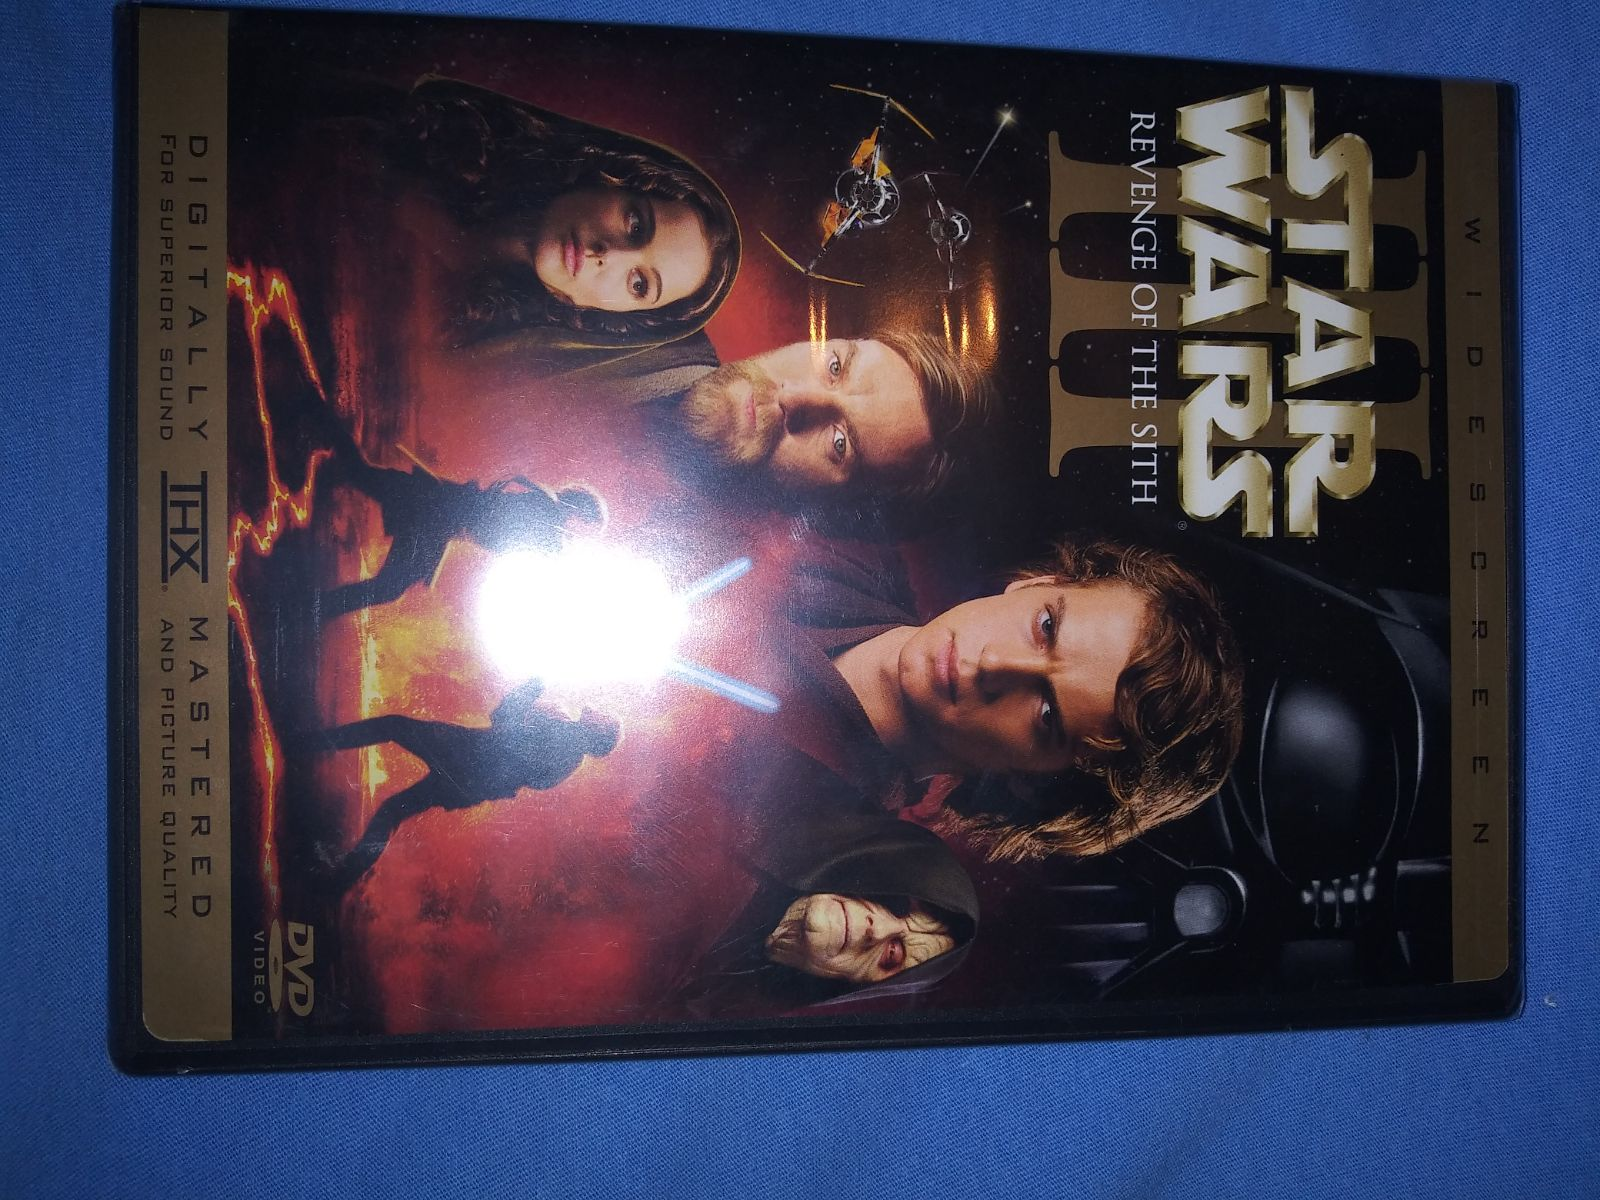 Star wars iii 3 revenge of the sith